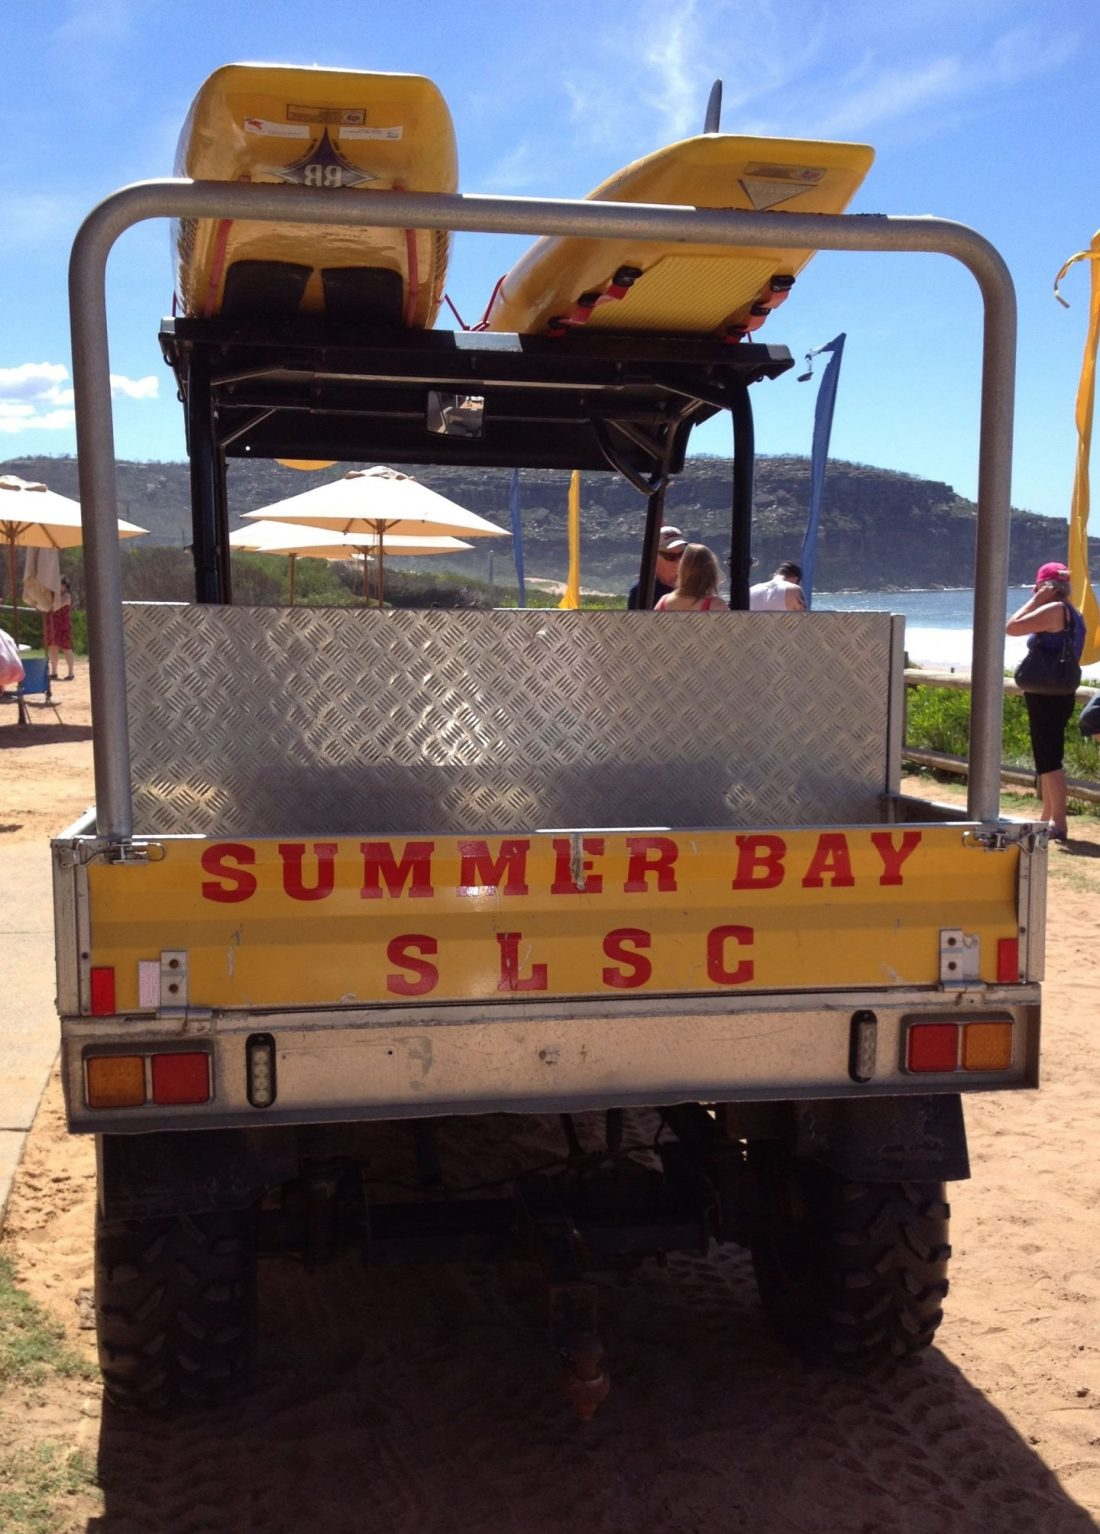 Home and Away's Summer Bay